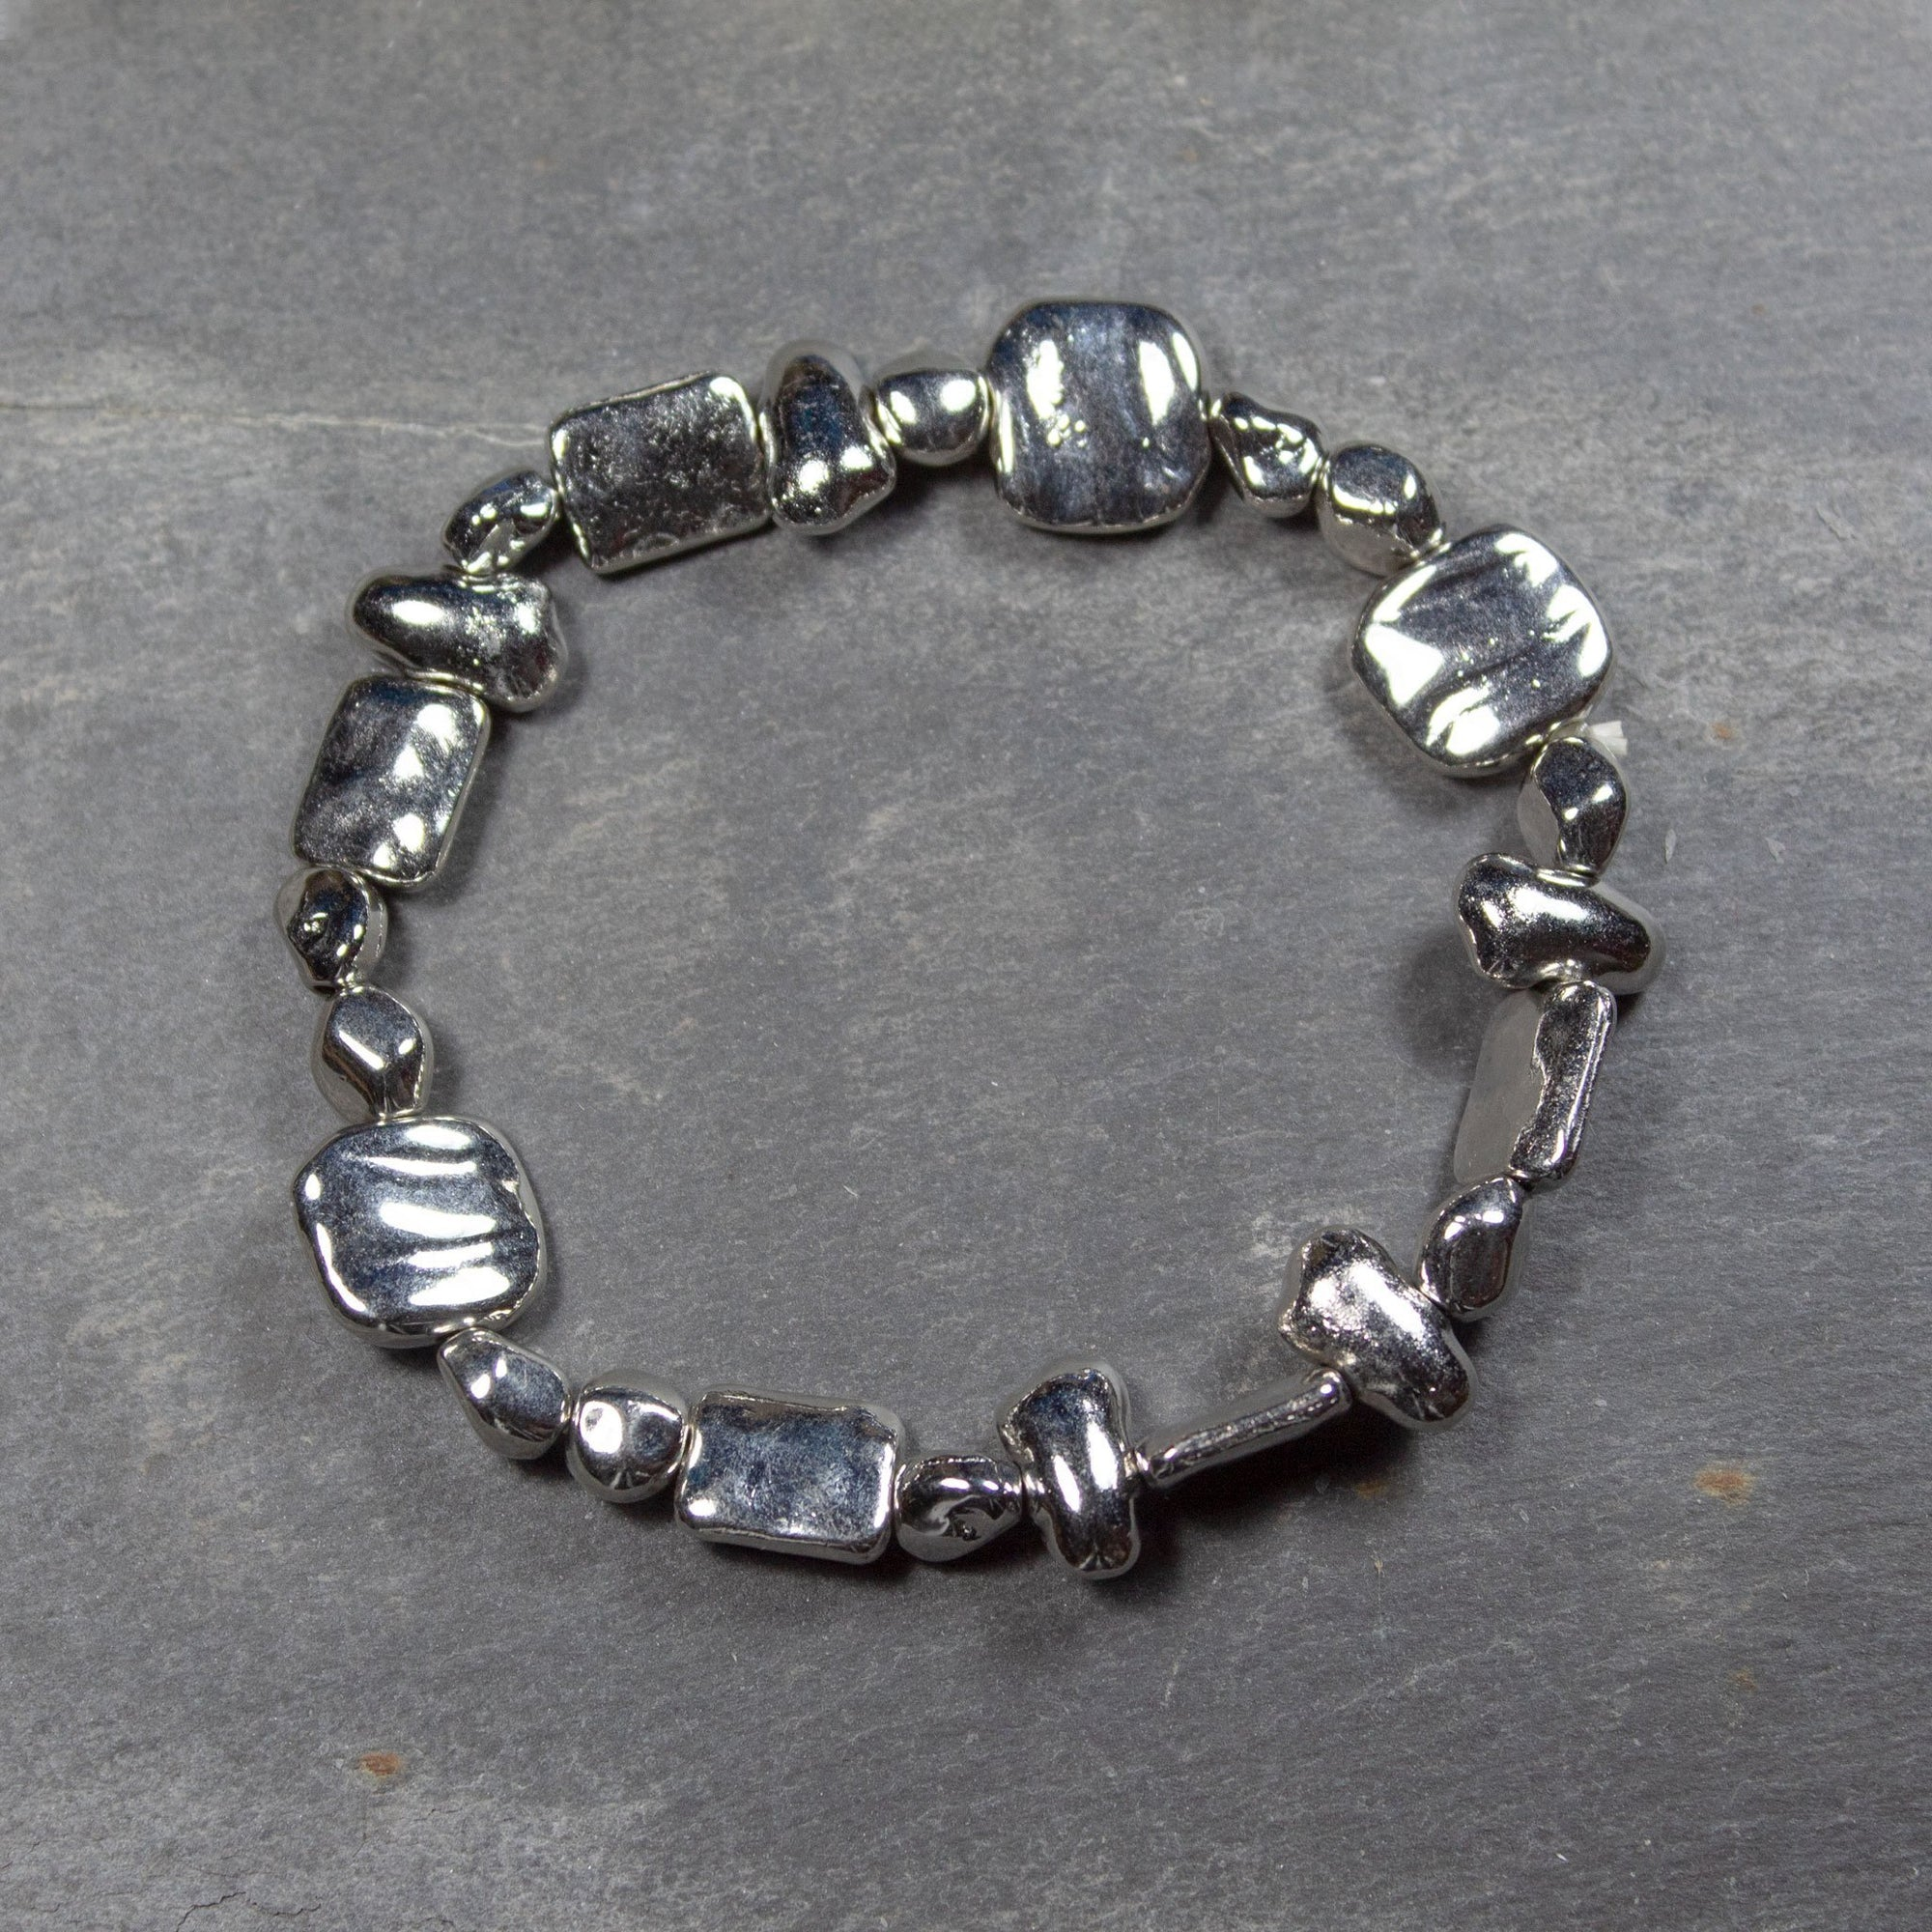 Metallic Bead Bracelet | Bracelet - The Naughty Shrew